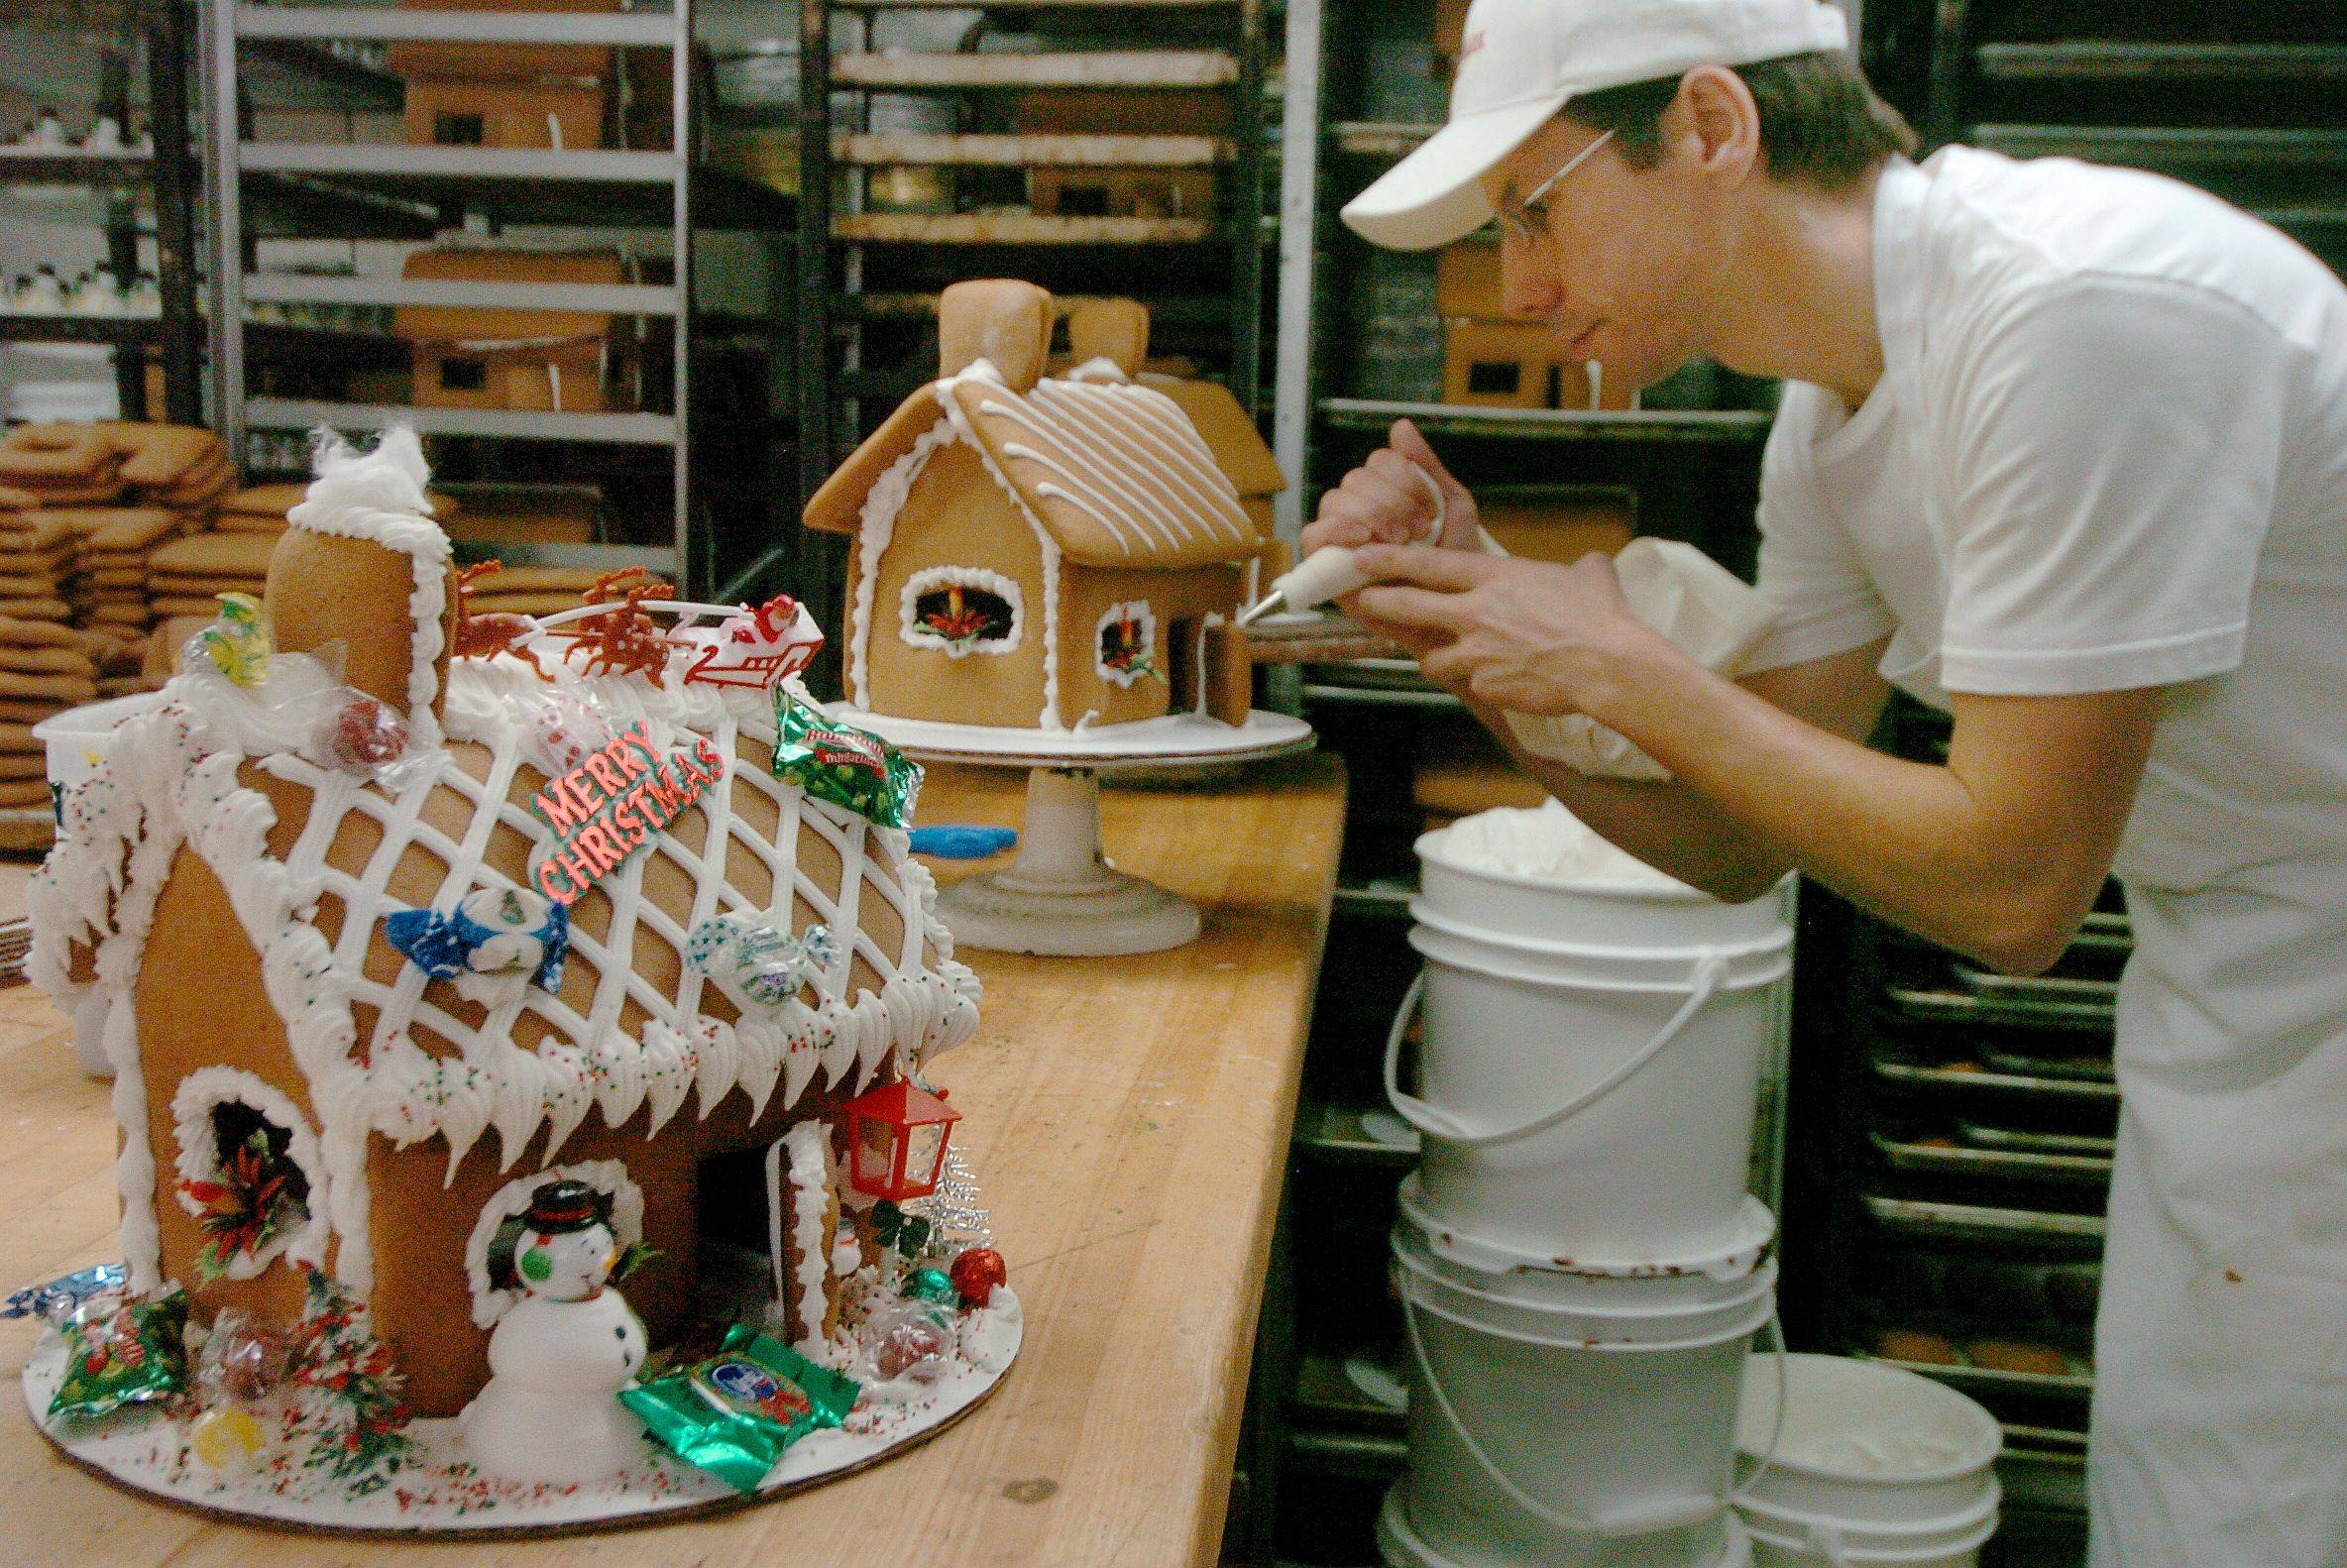 Kowalczyk puts the finishing touches on one of 200 gingerbread houses.